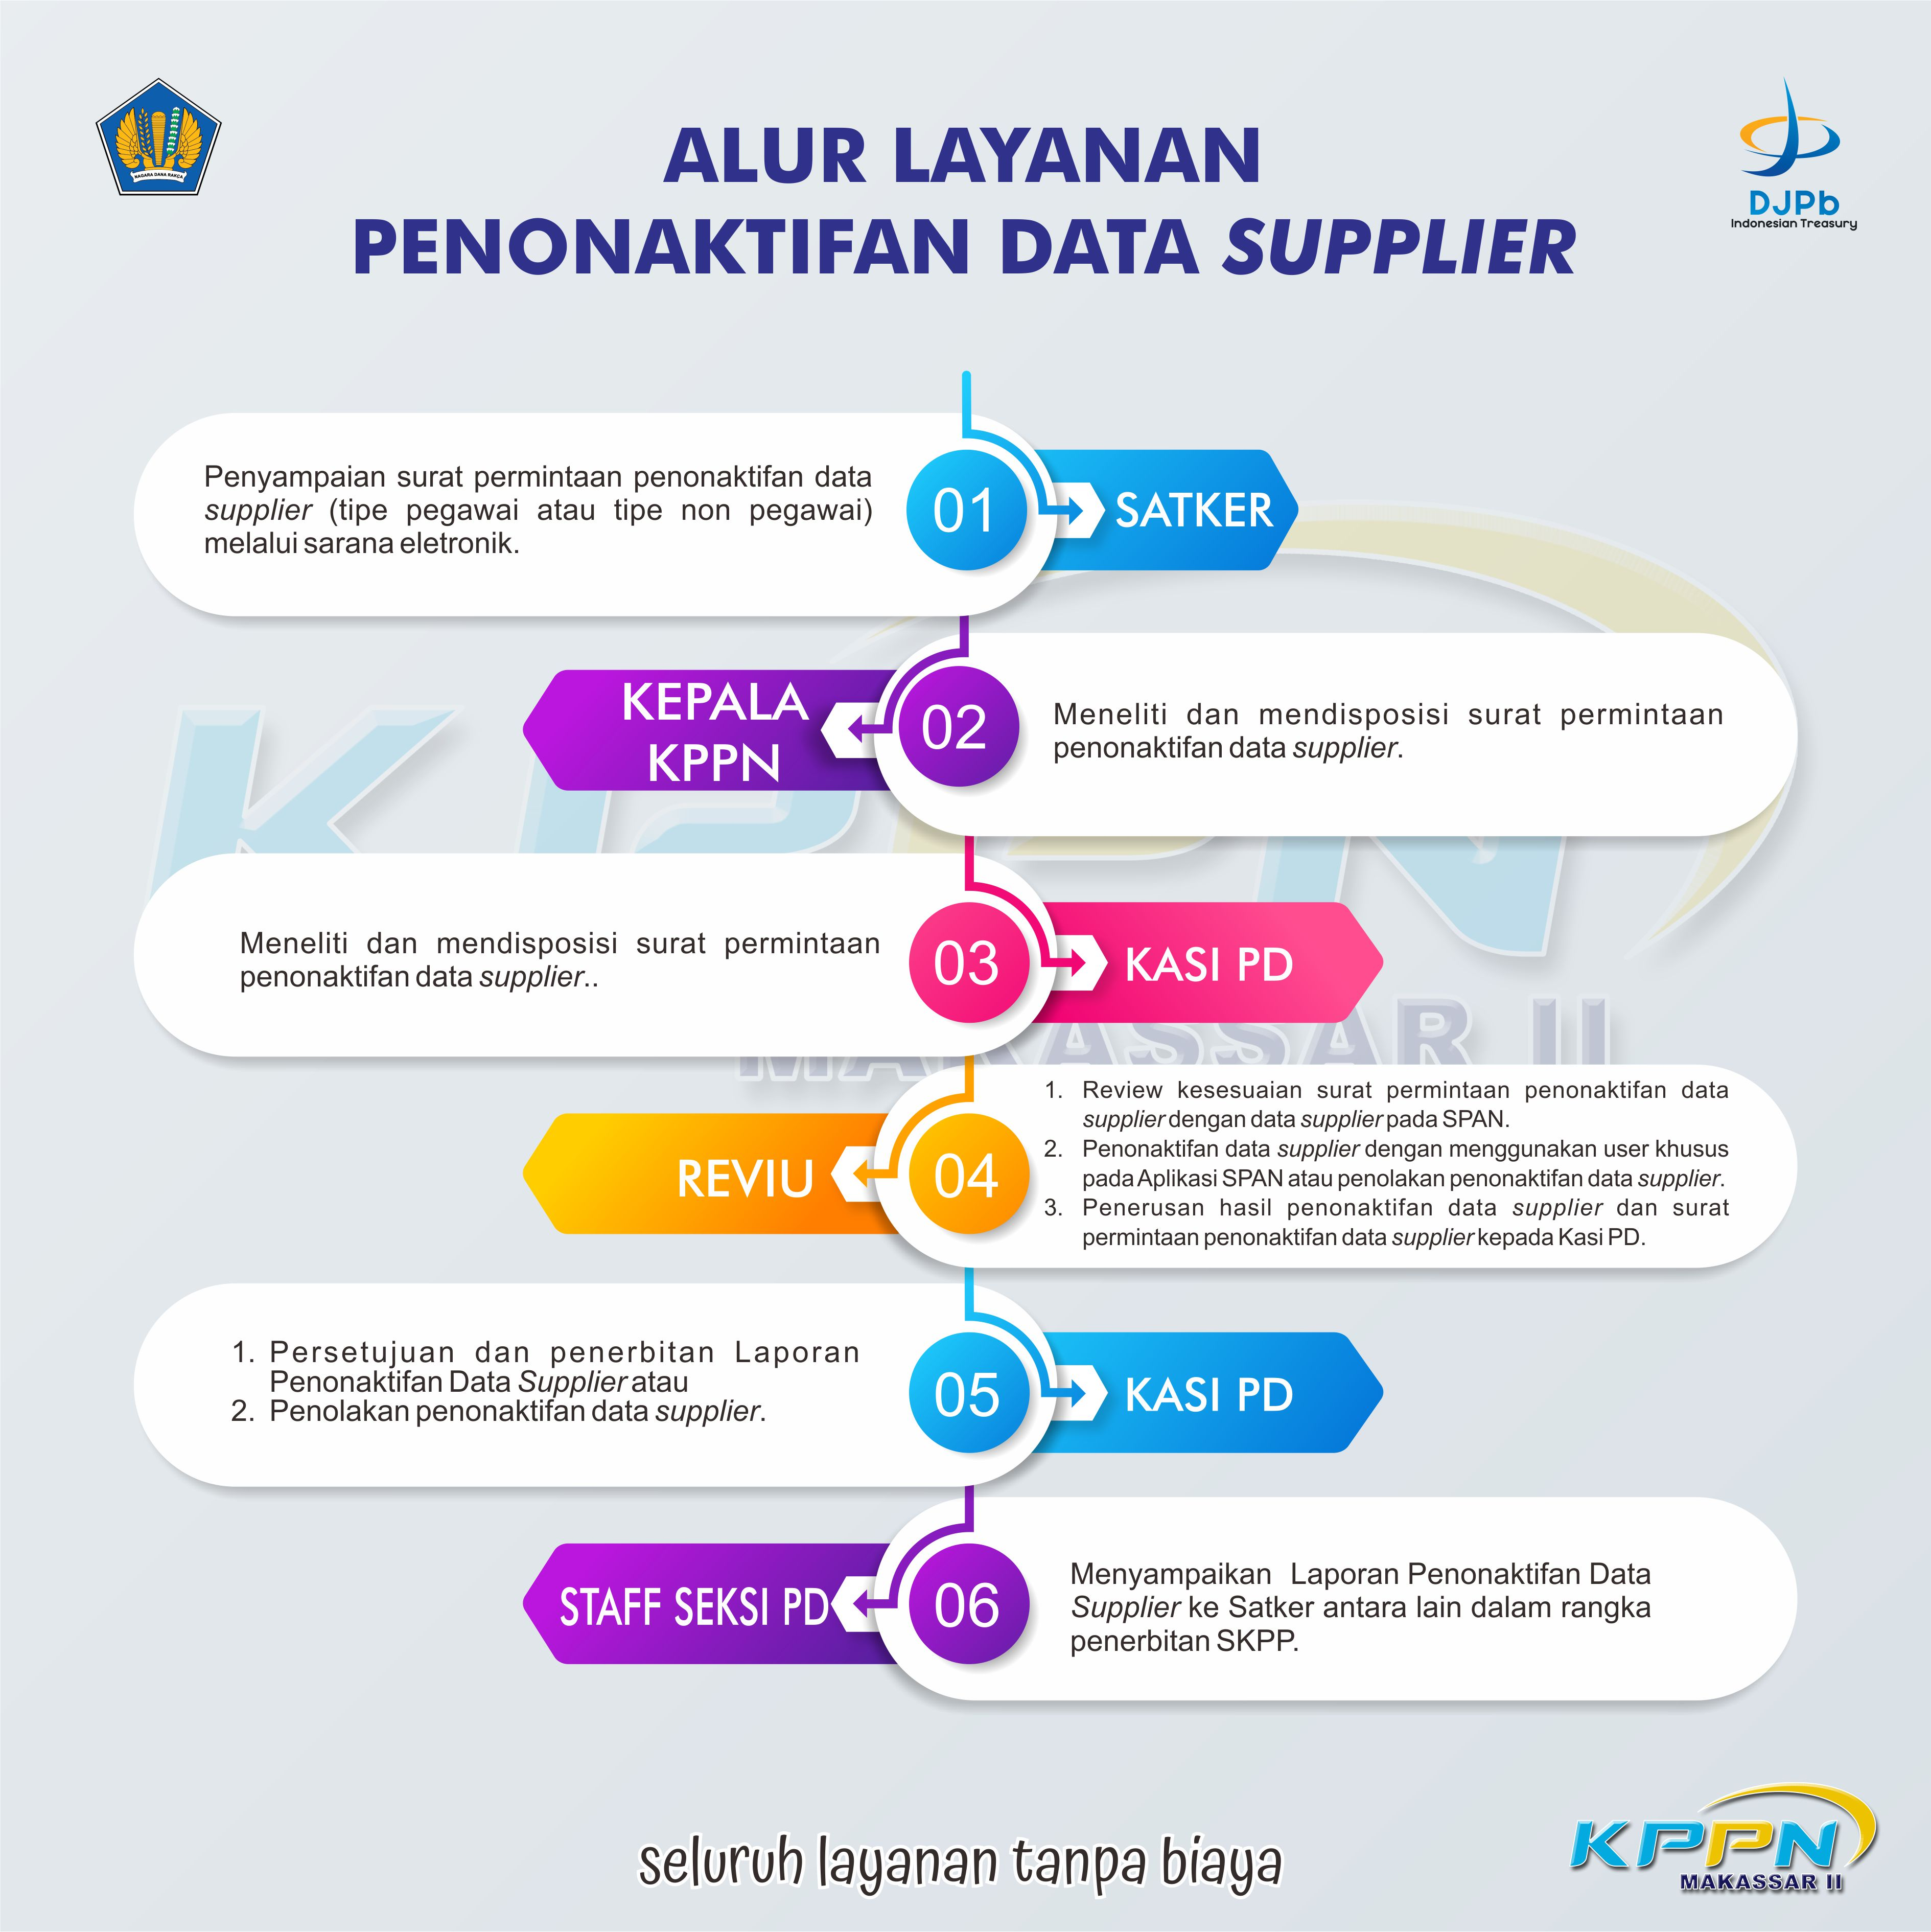 Alur Penonaktifan Data Supplier KPPN Makassar II